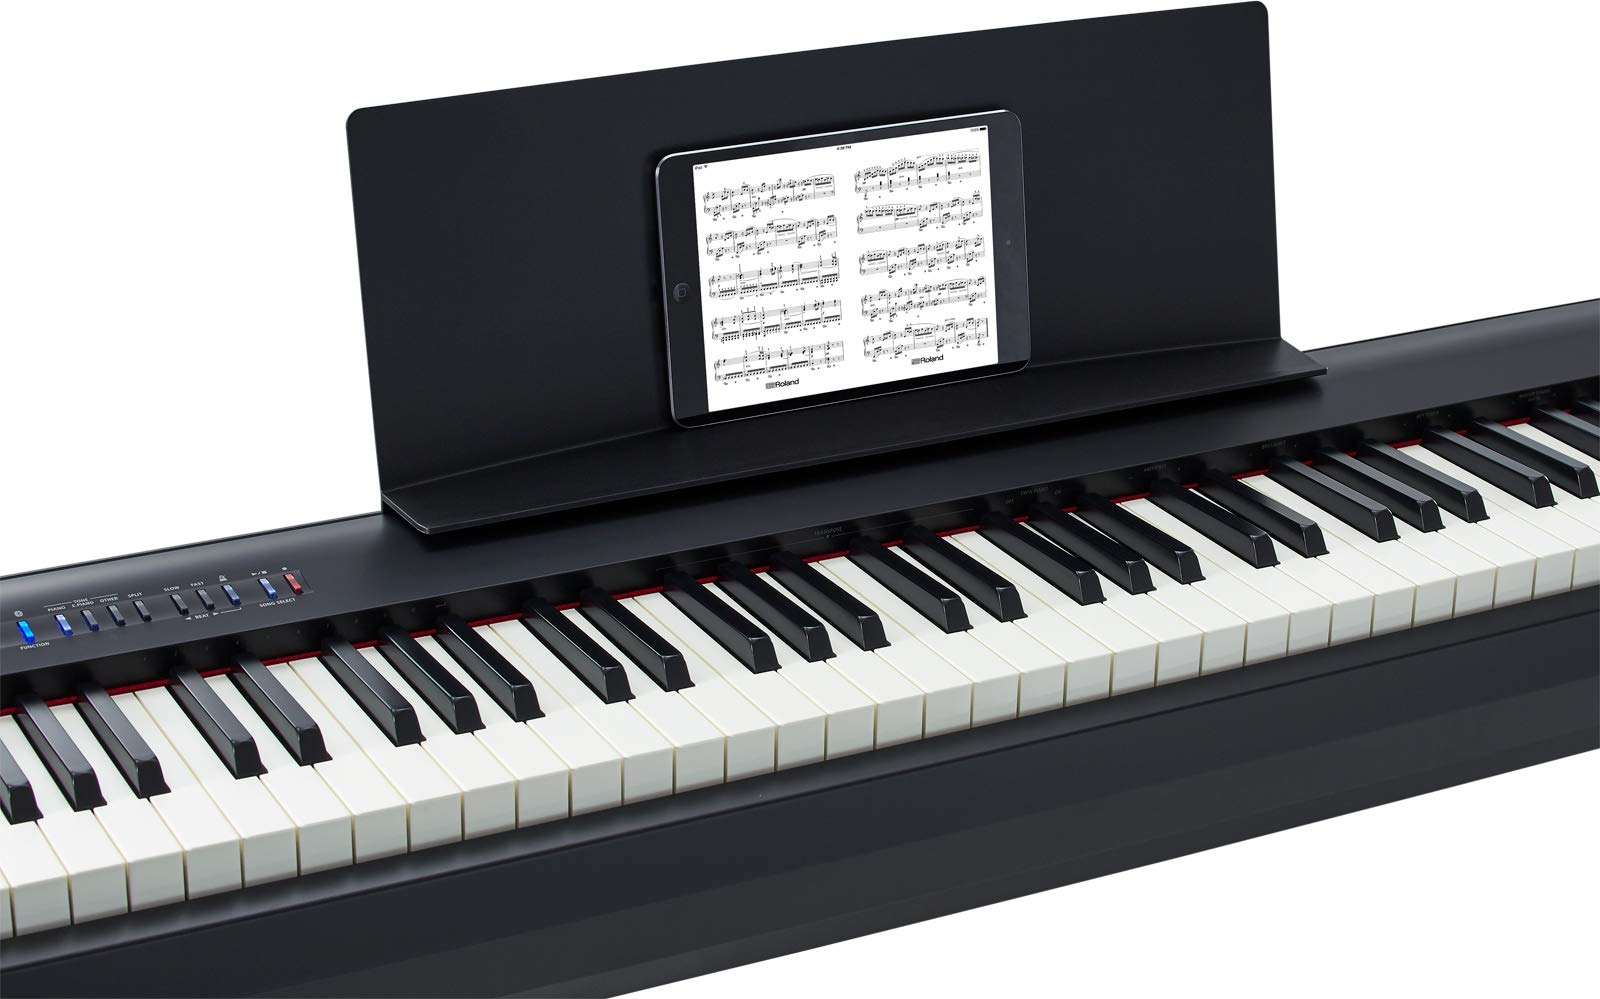 Roland Fp30 Bk Digital Piano With Ksc 70 Stand Roland Rh5 Headphone Buy Online In Hong Kong At Desertcart Hk Productid 209506729